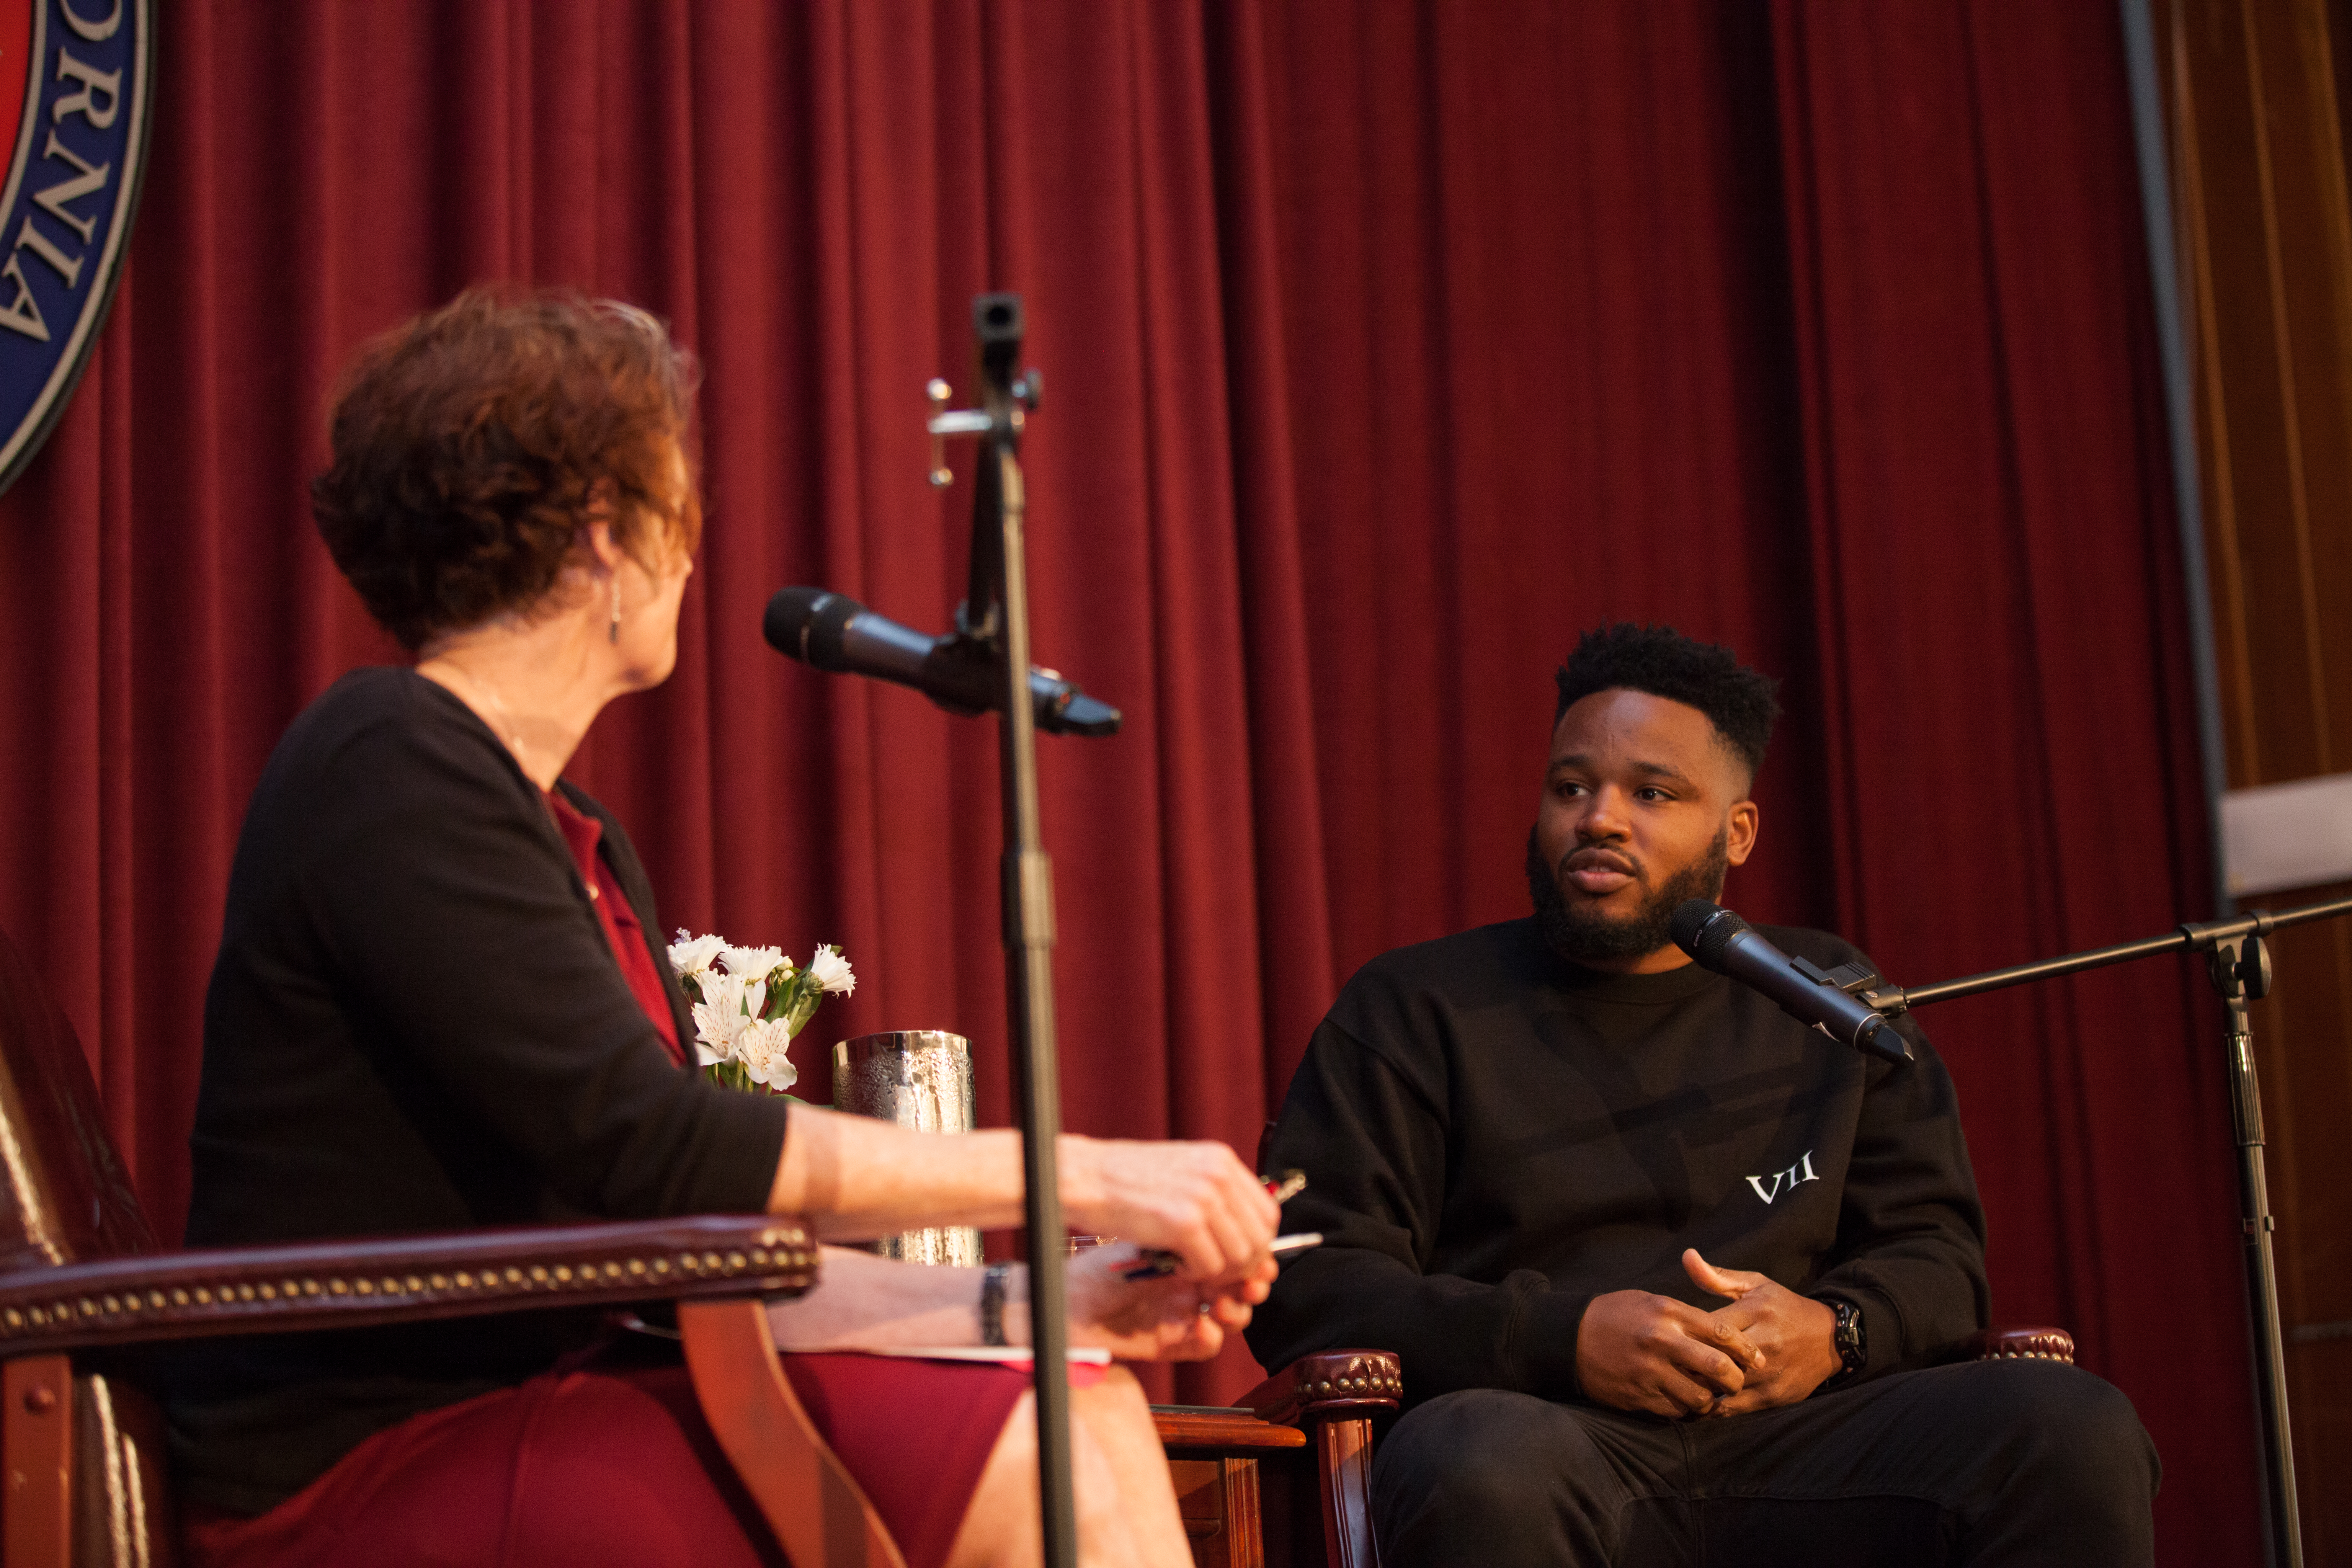 Acclaimed film director, screenwriter and former Saint Mary's student Ryan Coogler sat down for a conversation with his former English Professor Rosemary Graham in the Soda Center on Wednesday, May 16, 2018.